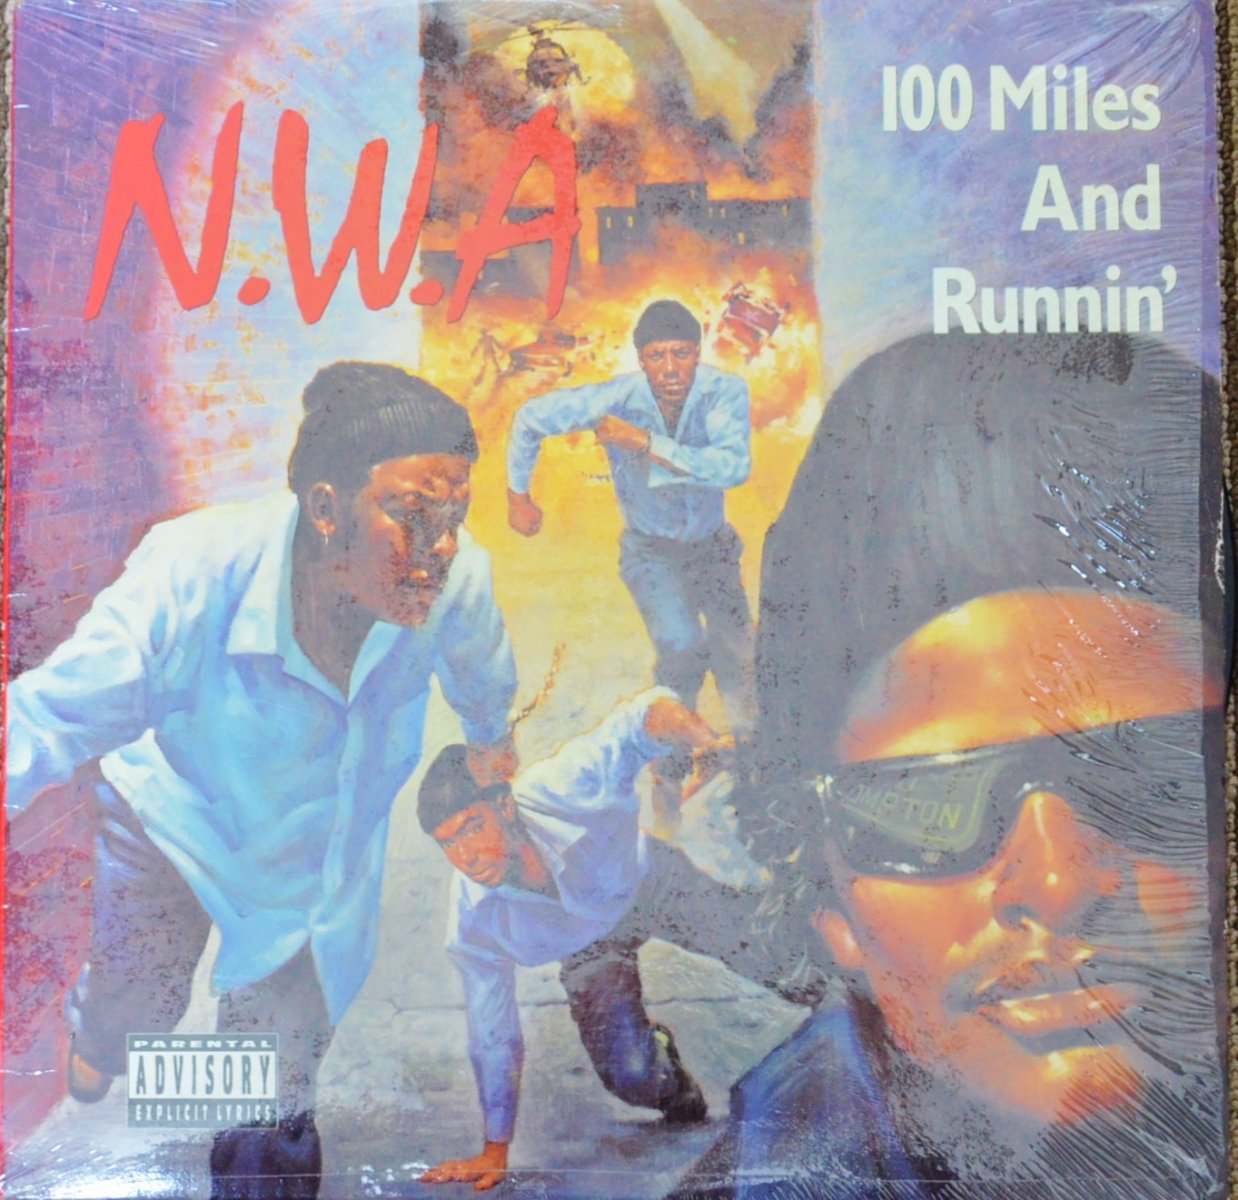 N.W.A / 100 MILES AND RUNNIN' (12